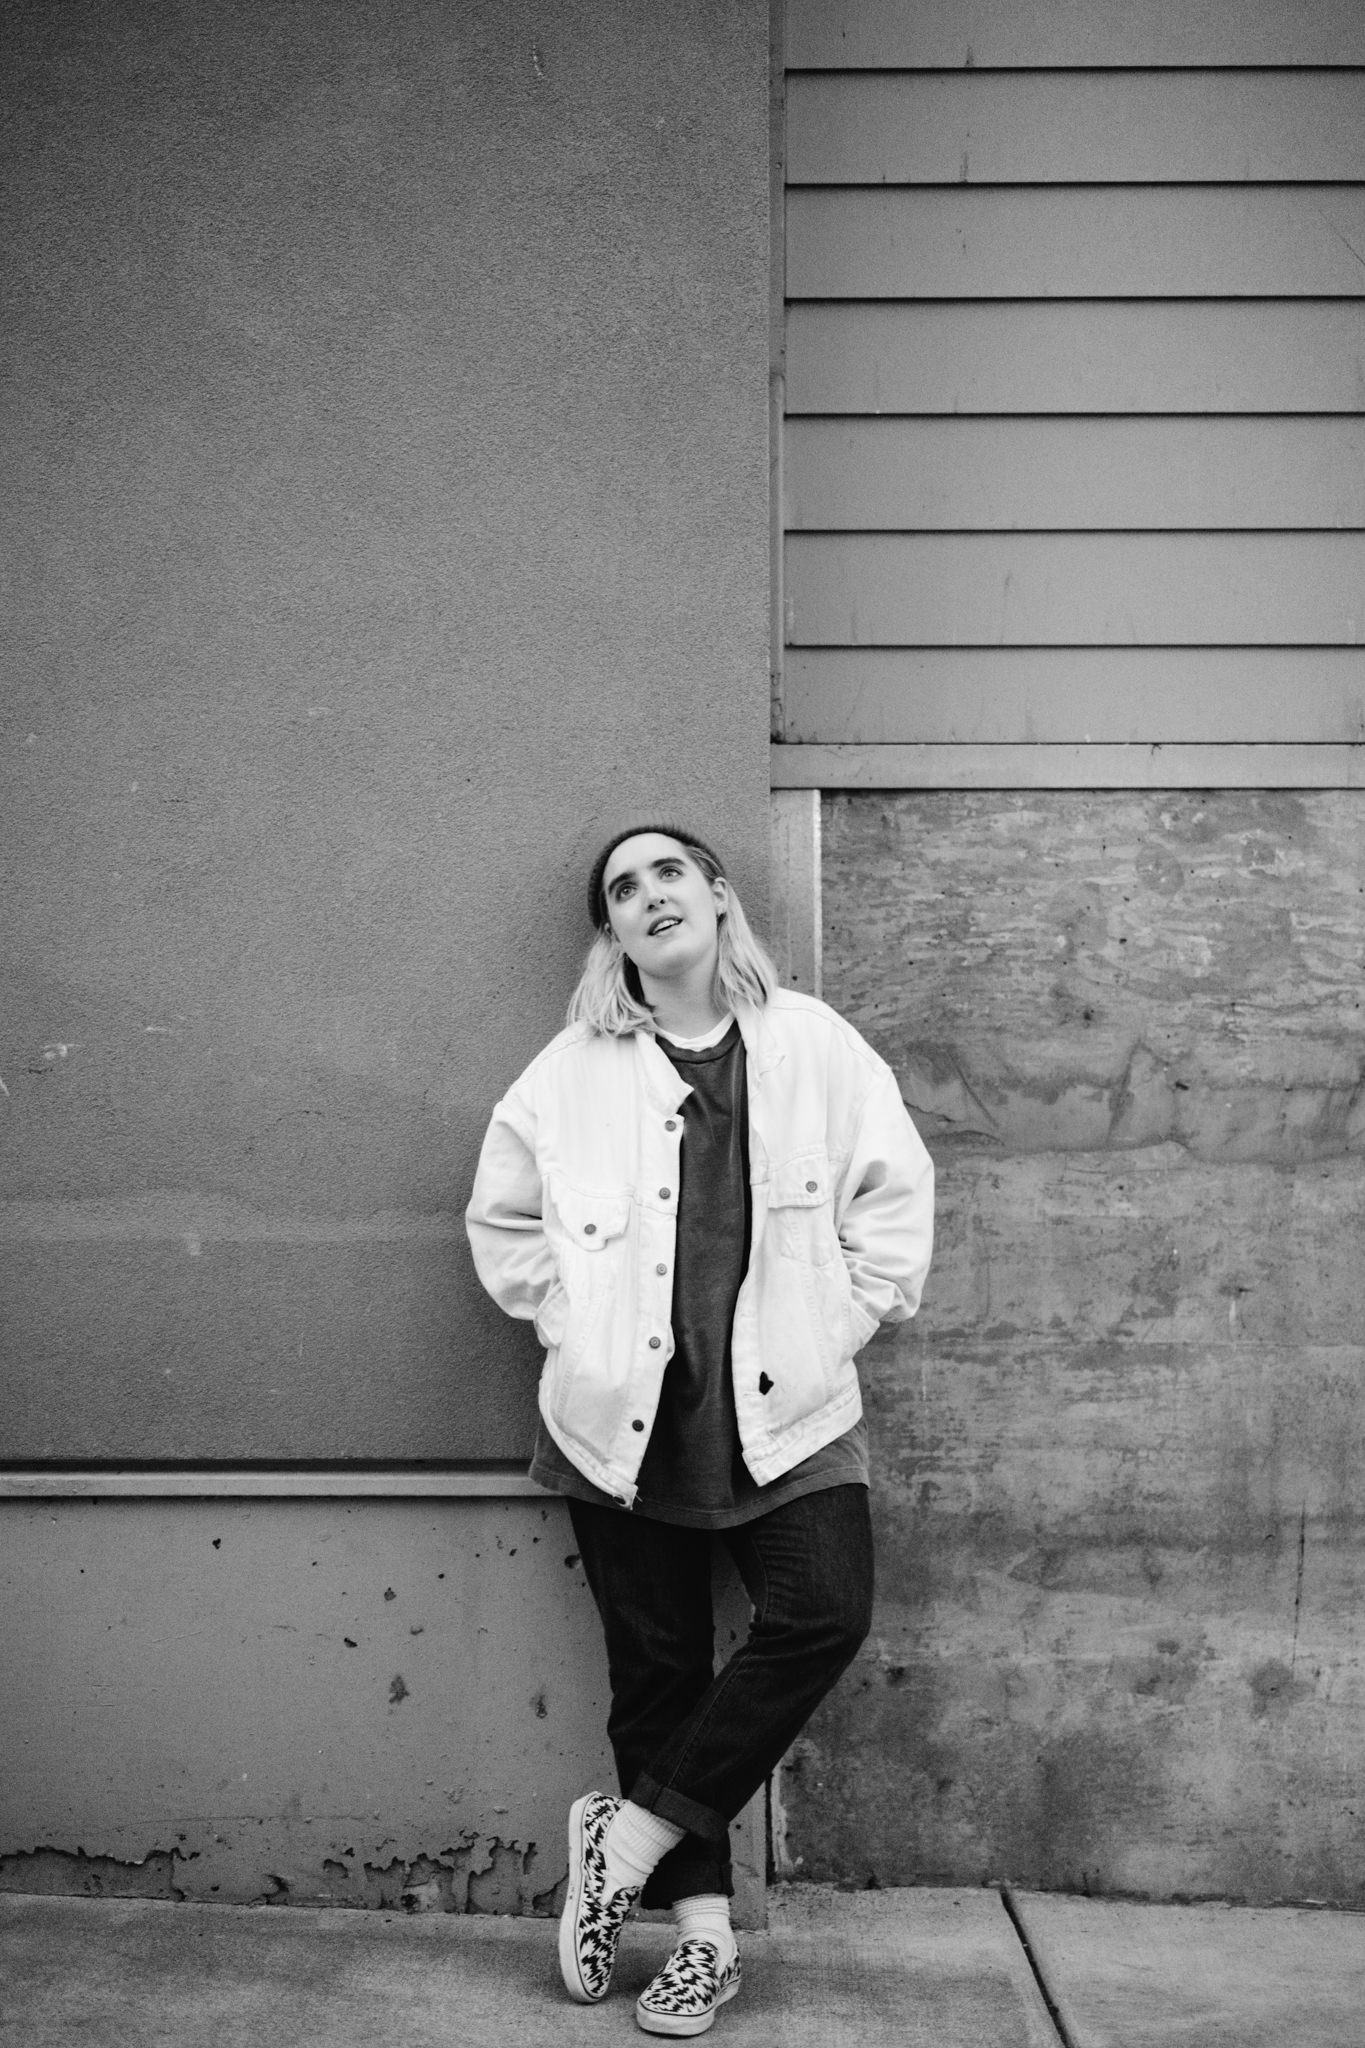 20161001-Shura-san-francisco-portrait-backstage.jpg